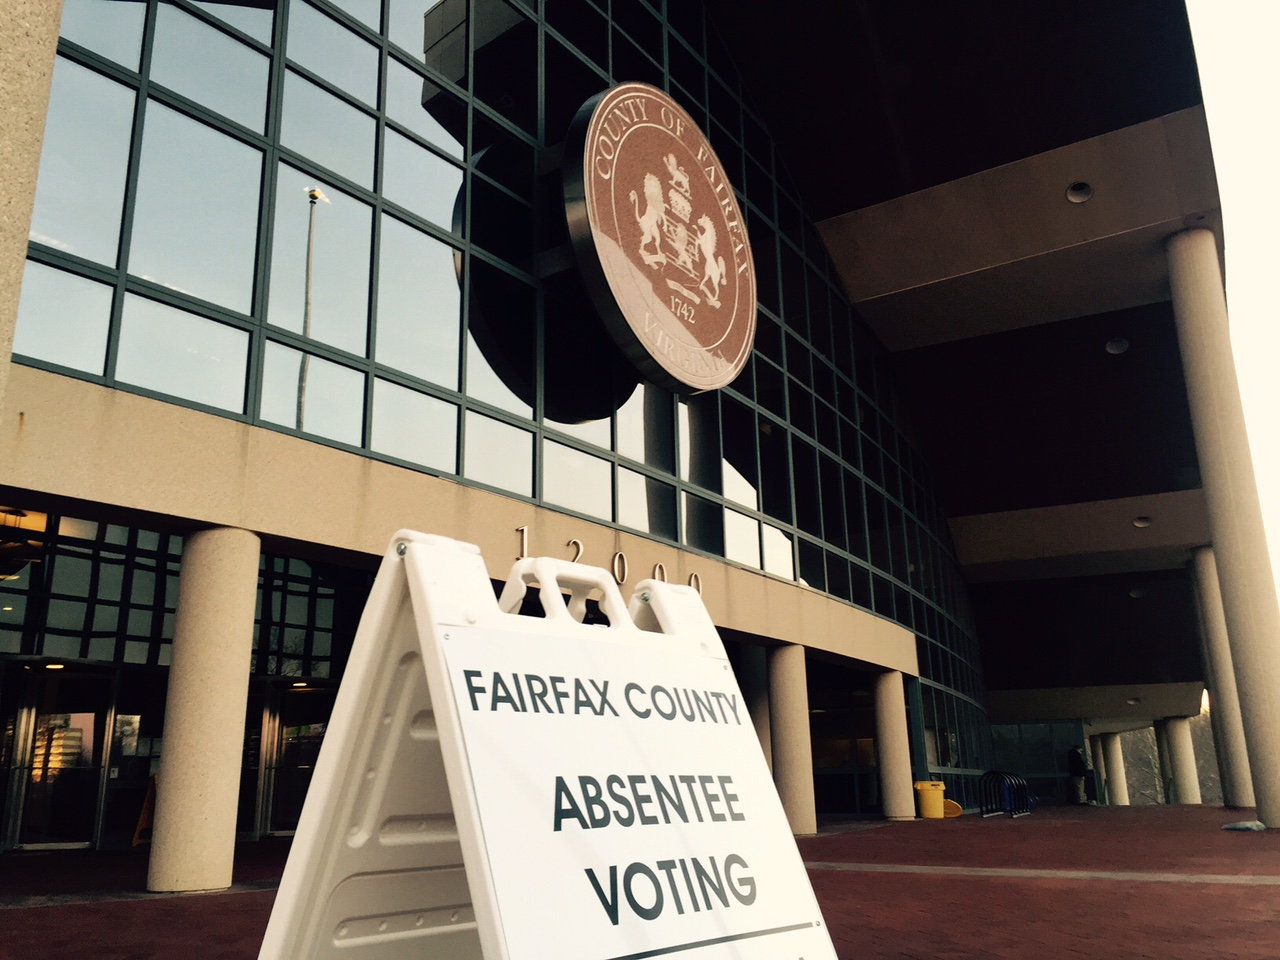 Va. absentee voting sets record high